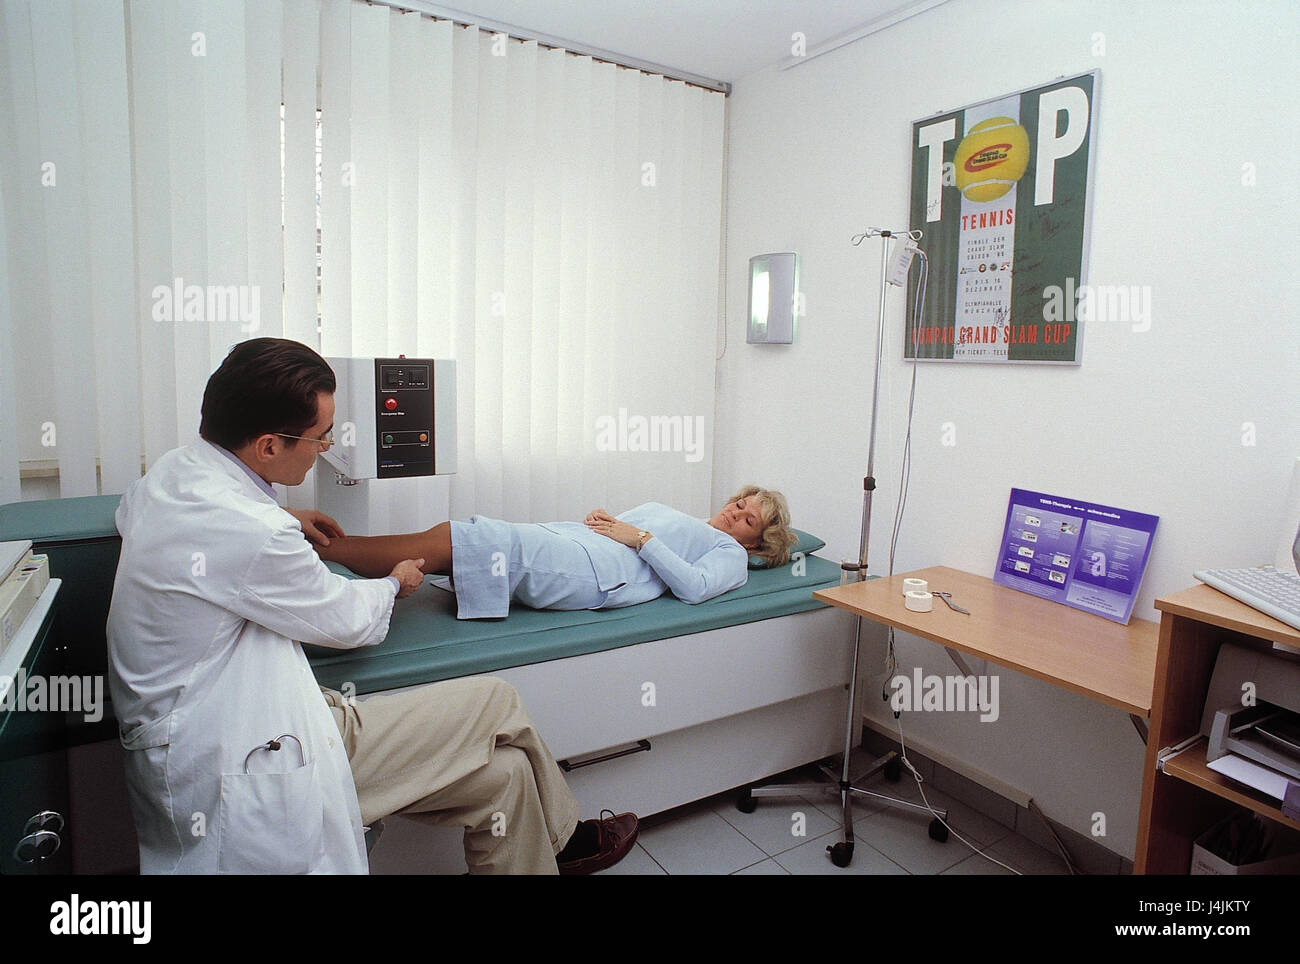 Medical Practise Examination Room Doctor Patient